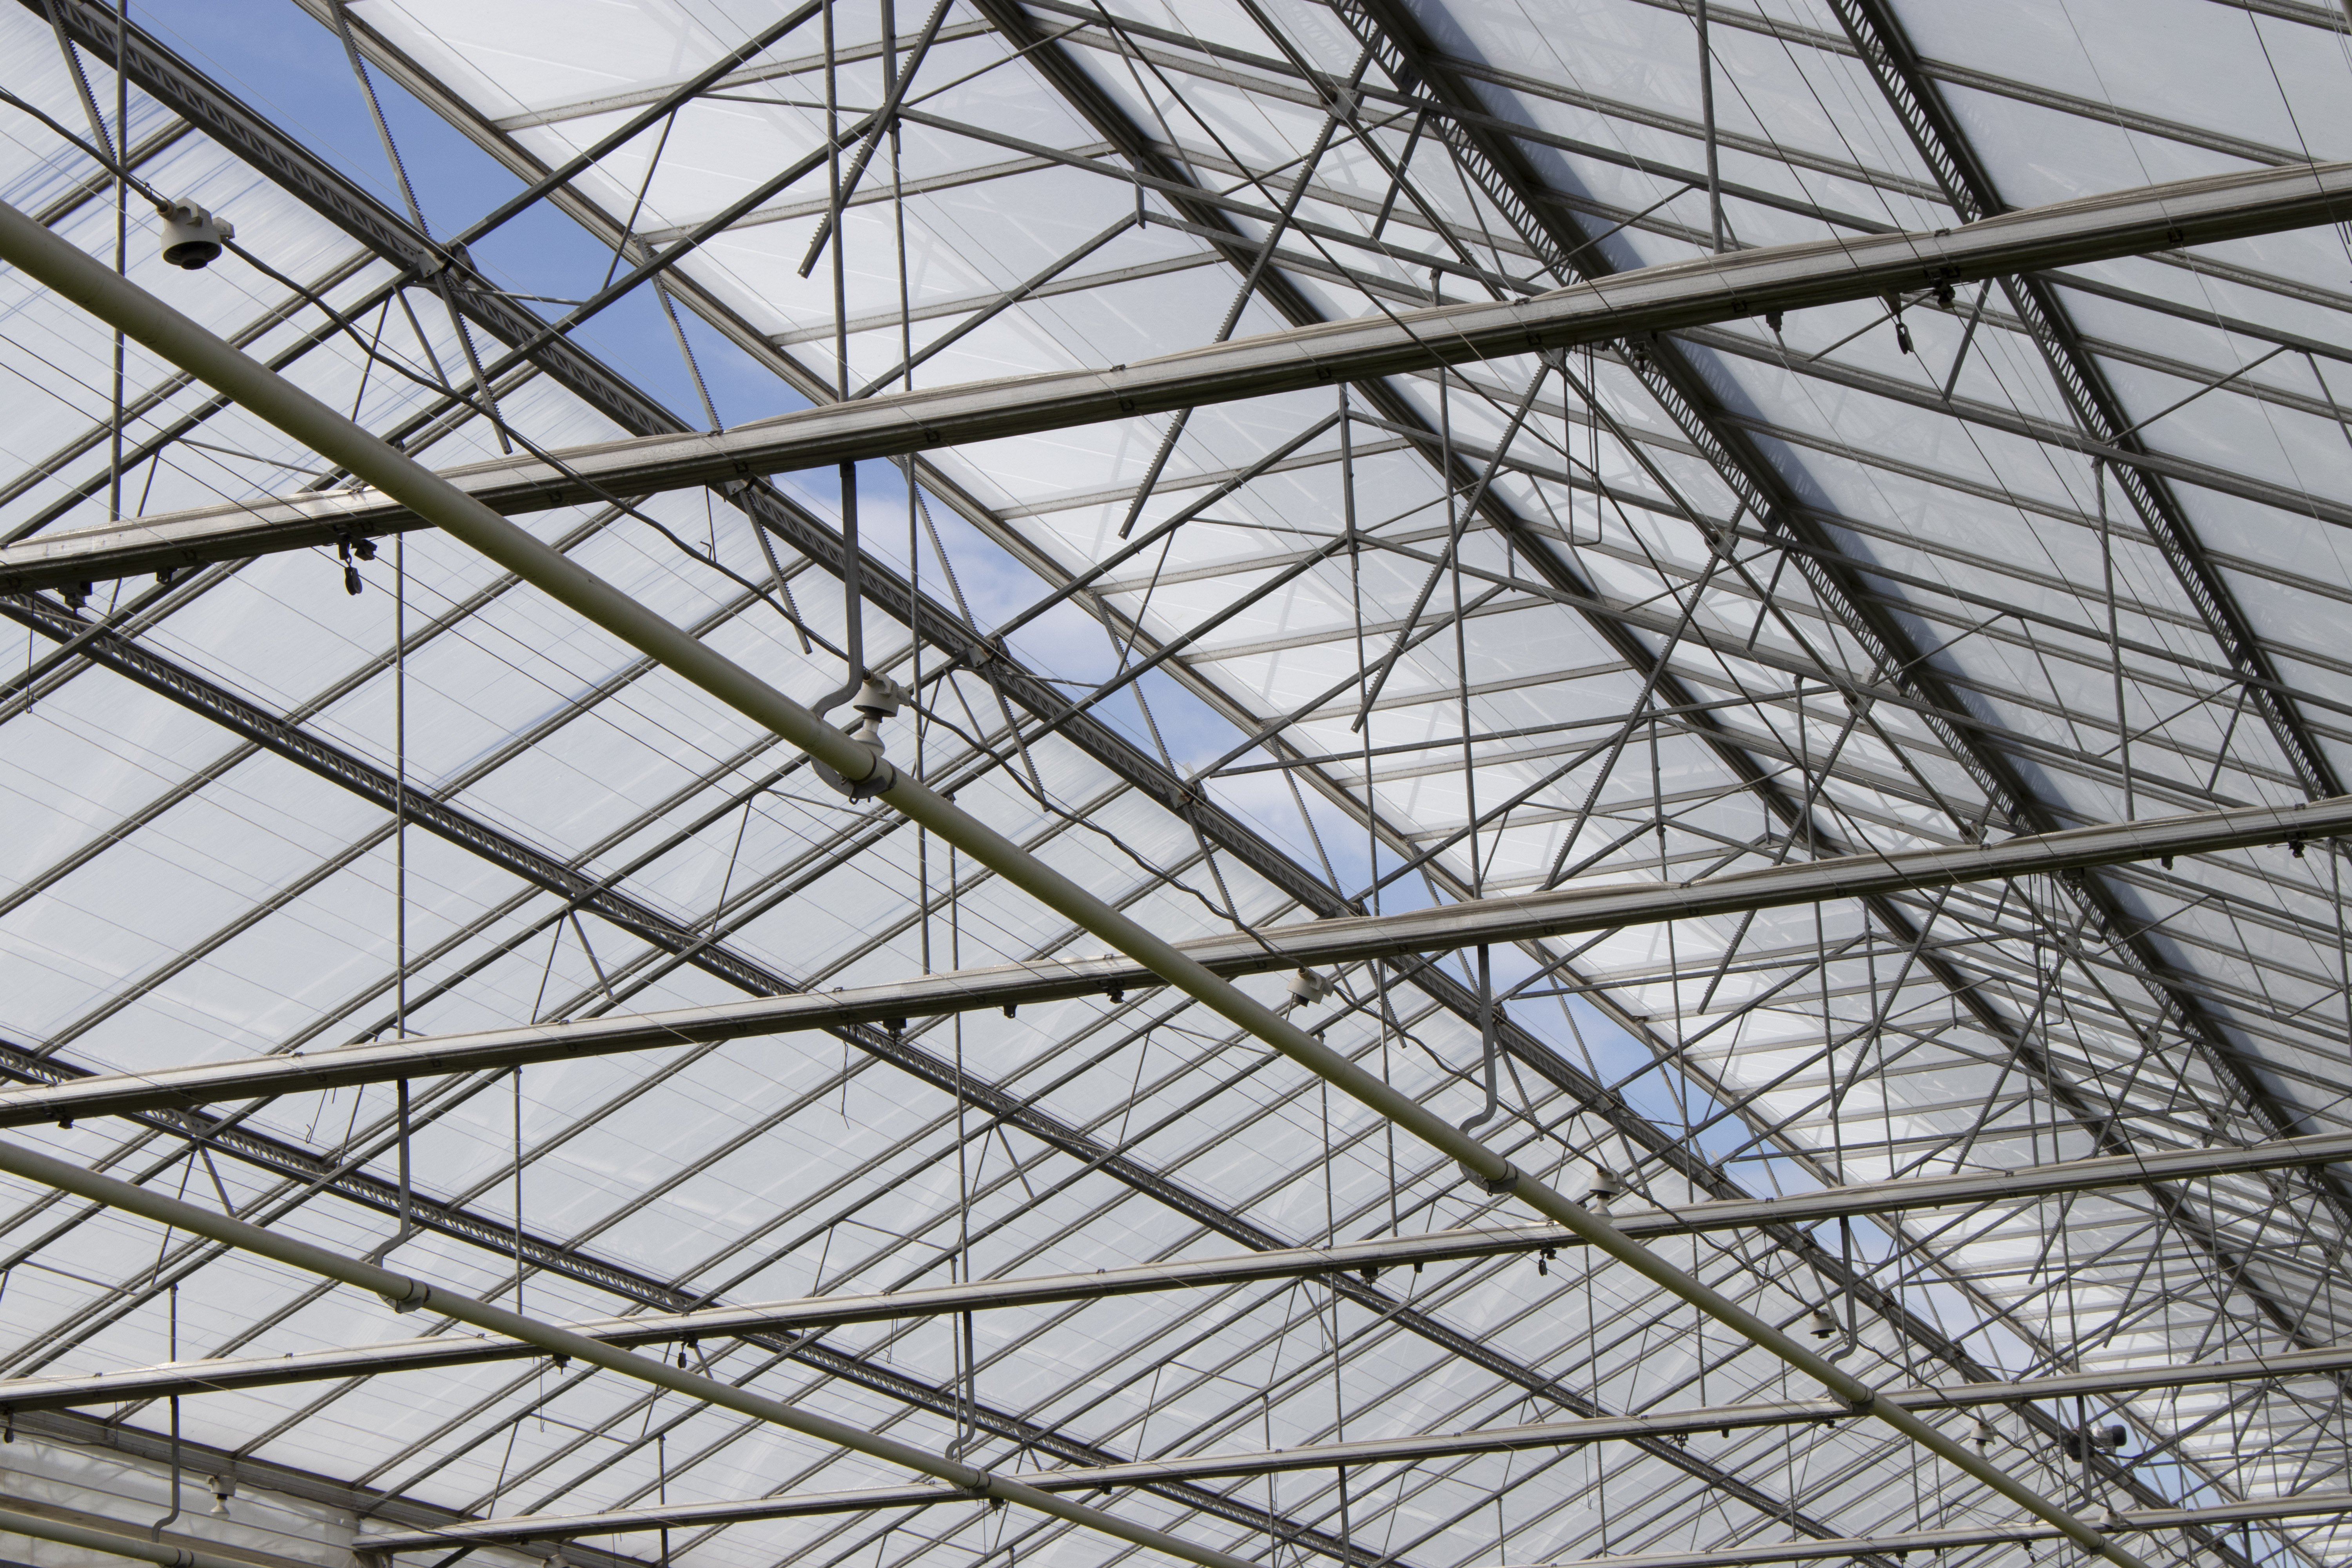 ReduFuse IR is a coating that reduces heat radiation while diffusing the light when it enters the greenhouse.